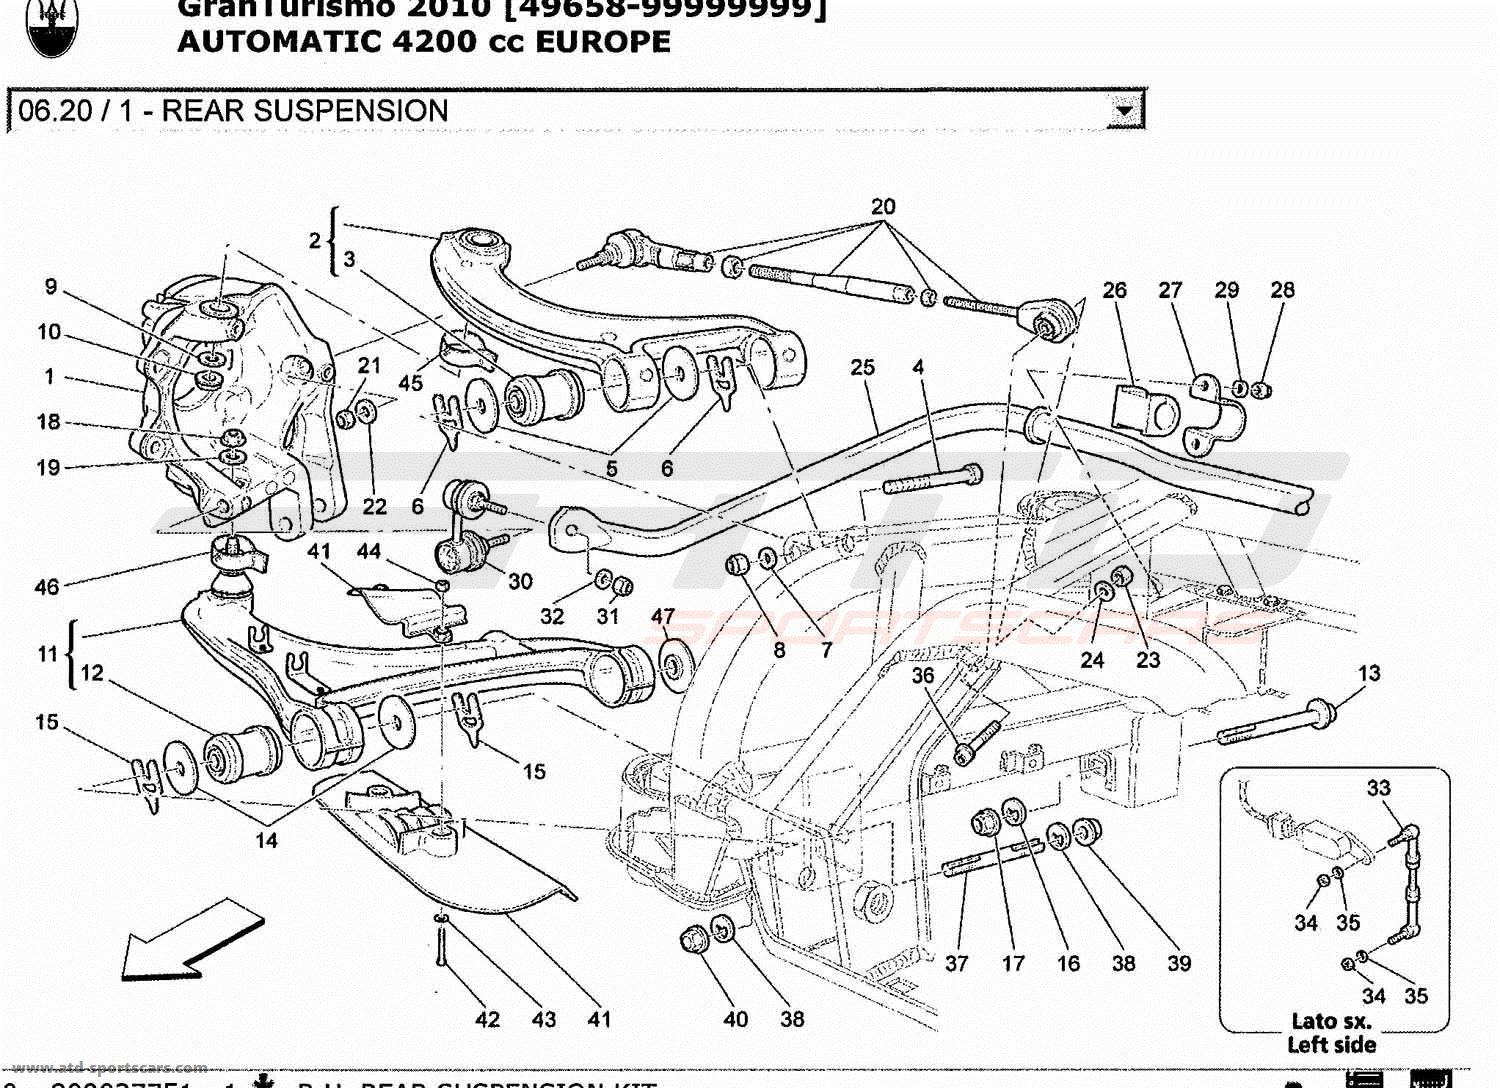 ej25 engine diagram subaru legacy l engine diagram auto wiring subaru auto #2